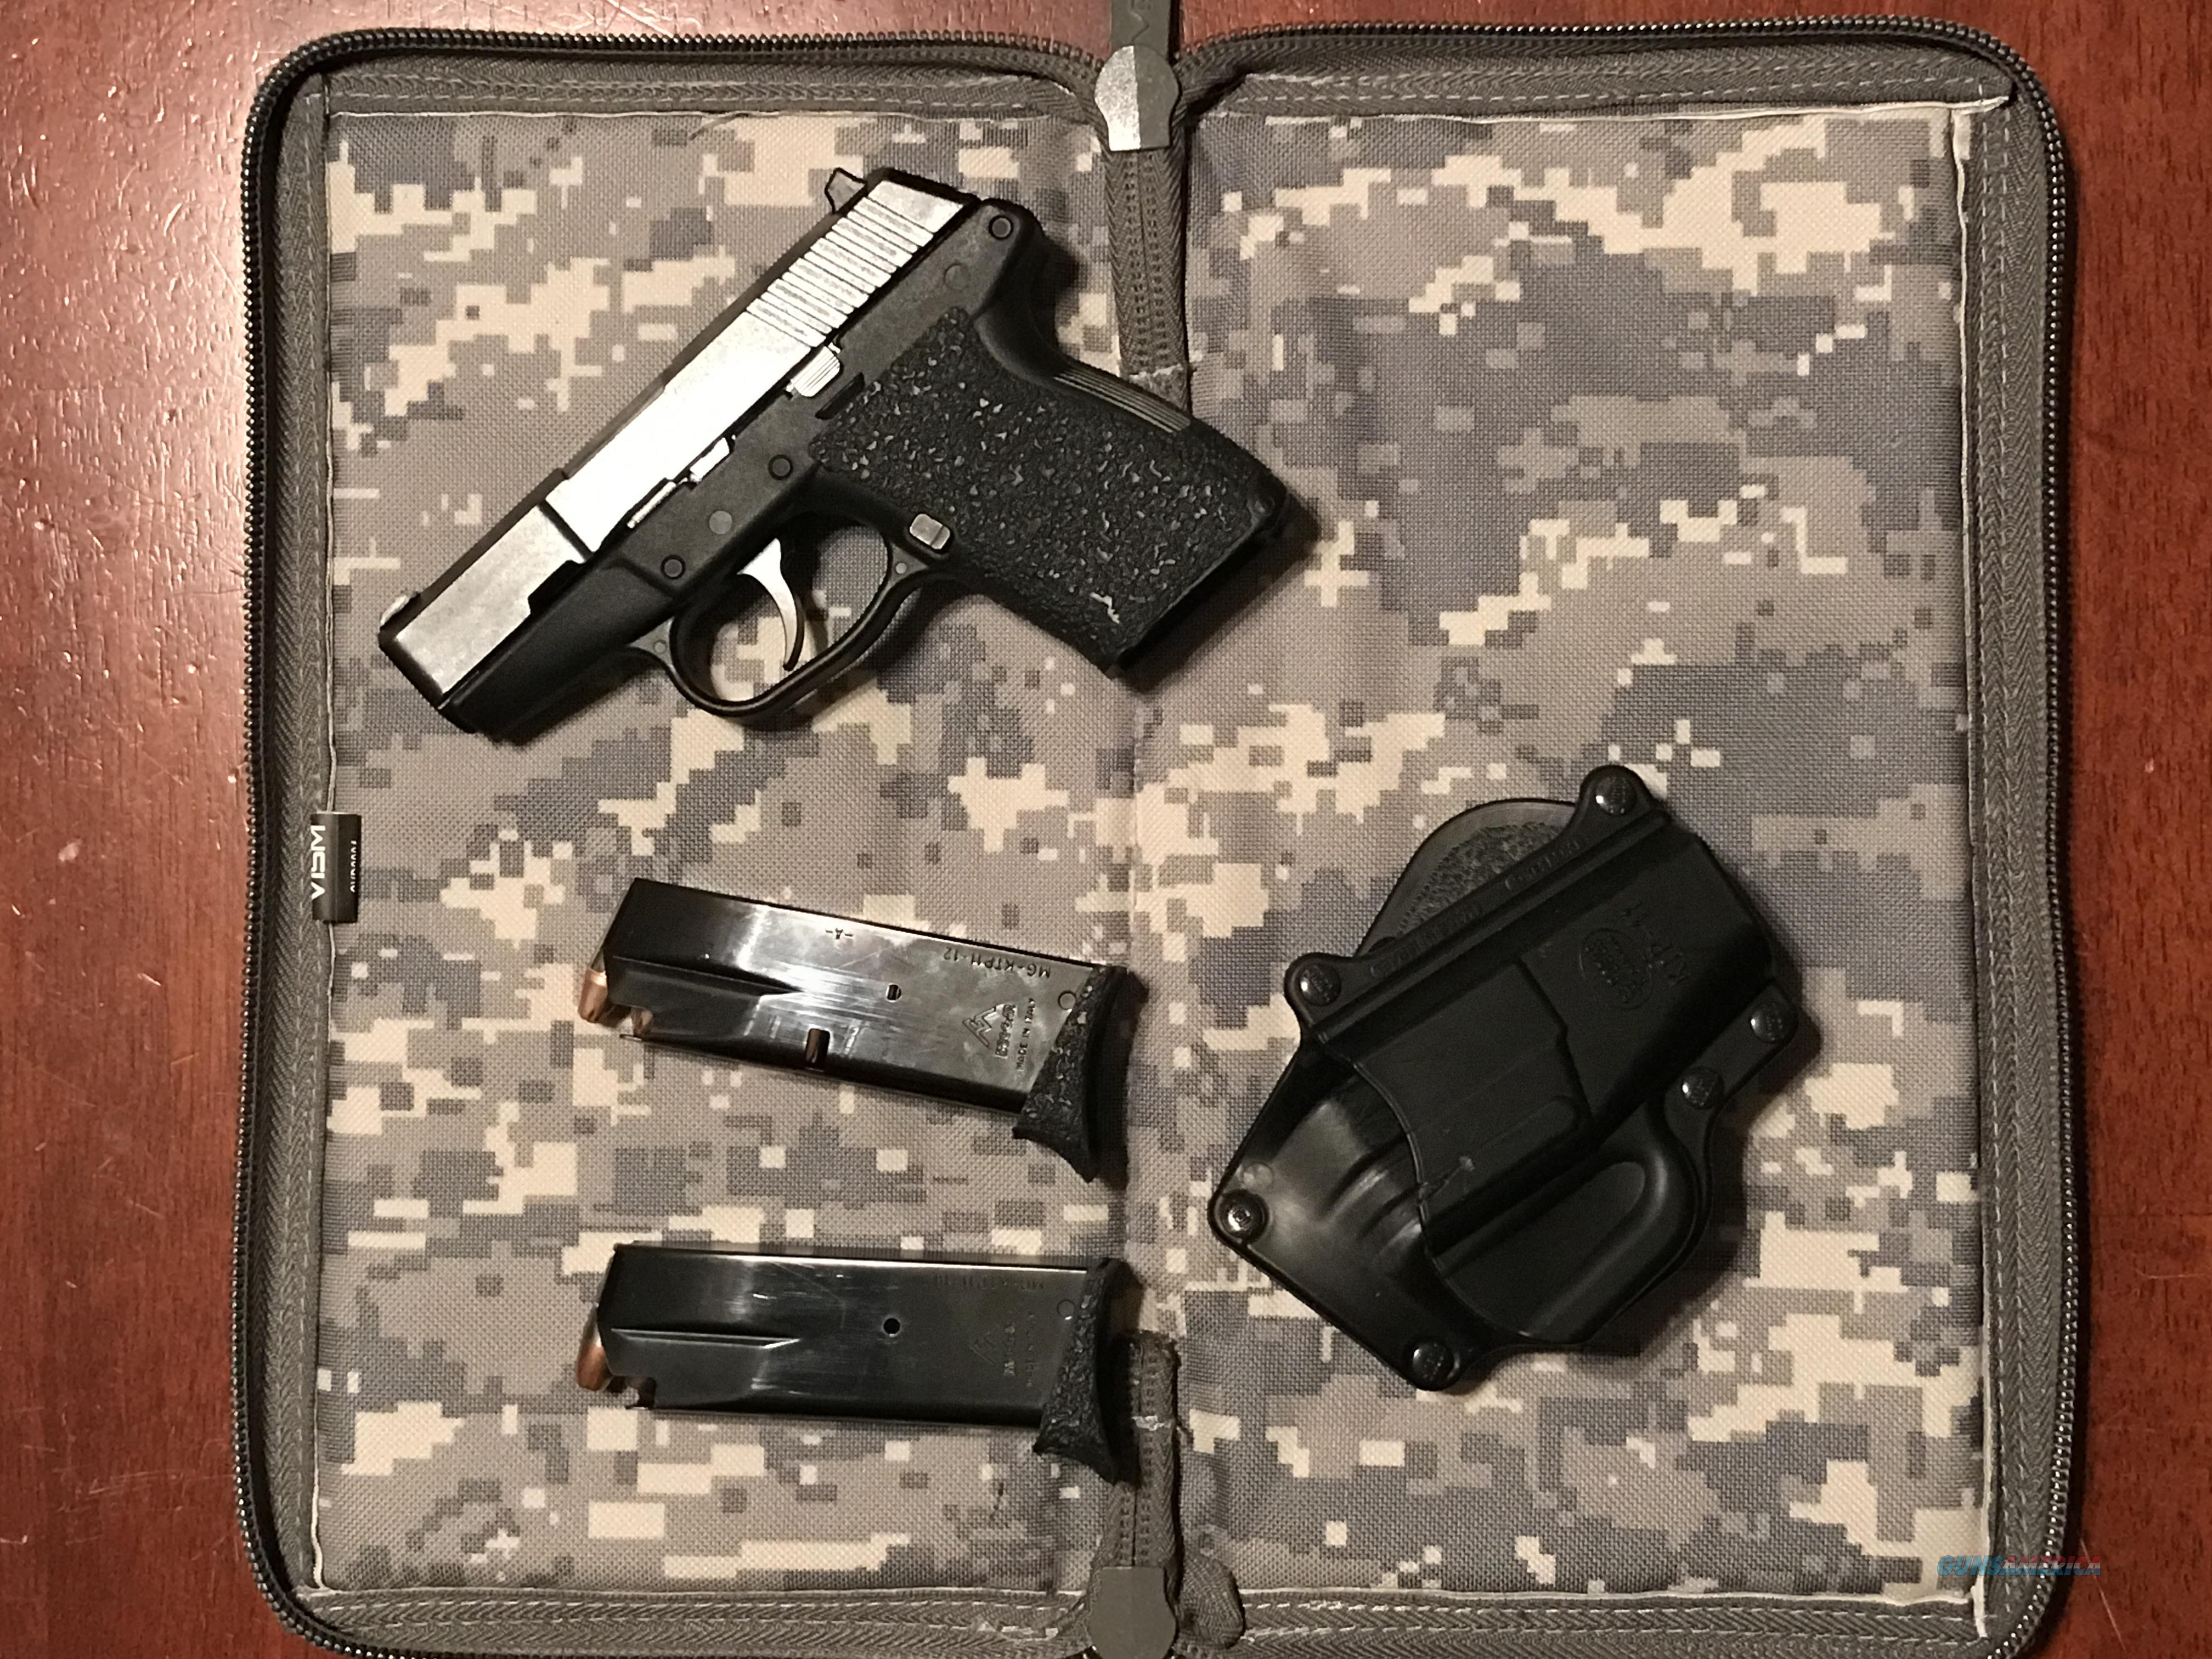 Kel-Tec P11 9mm  Guns > Pistols > Kel-Tec Pistols > Pocket Pistol Type